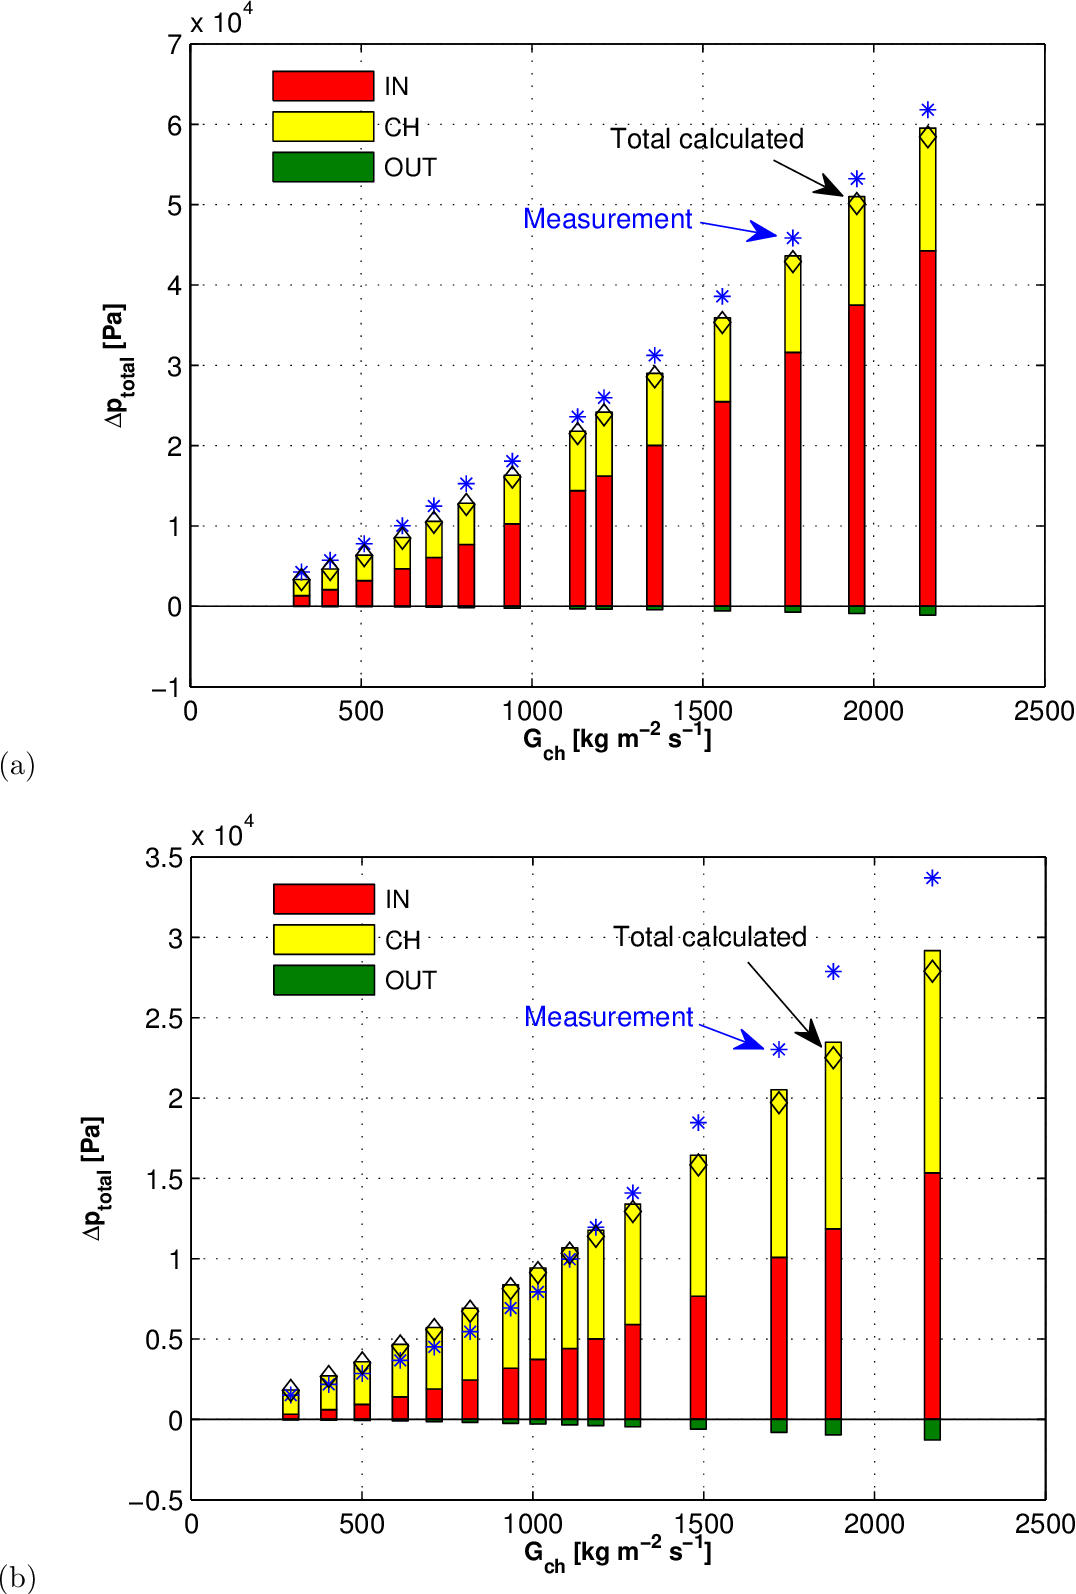 Figure 6.3: Adiabatic pressure gradients for: (a) R236fa in ein,rest=4, and (b) R1234ze(E) in ein,rest=2.